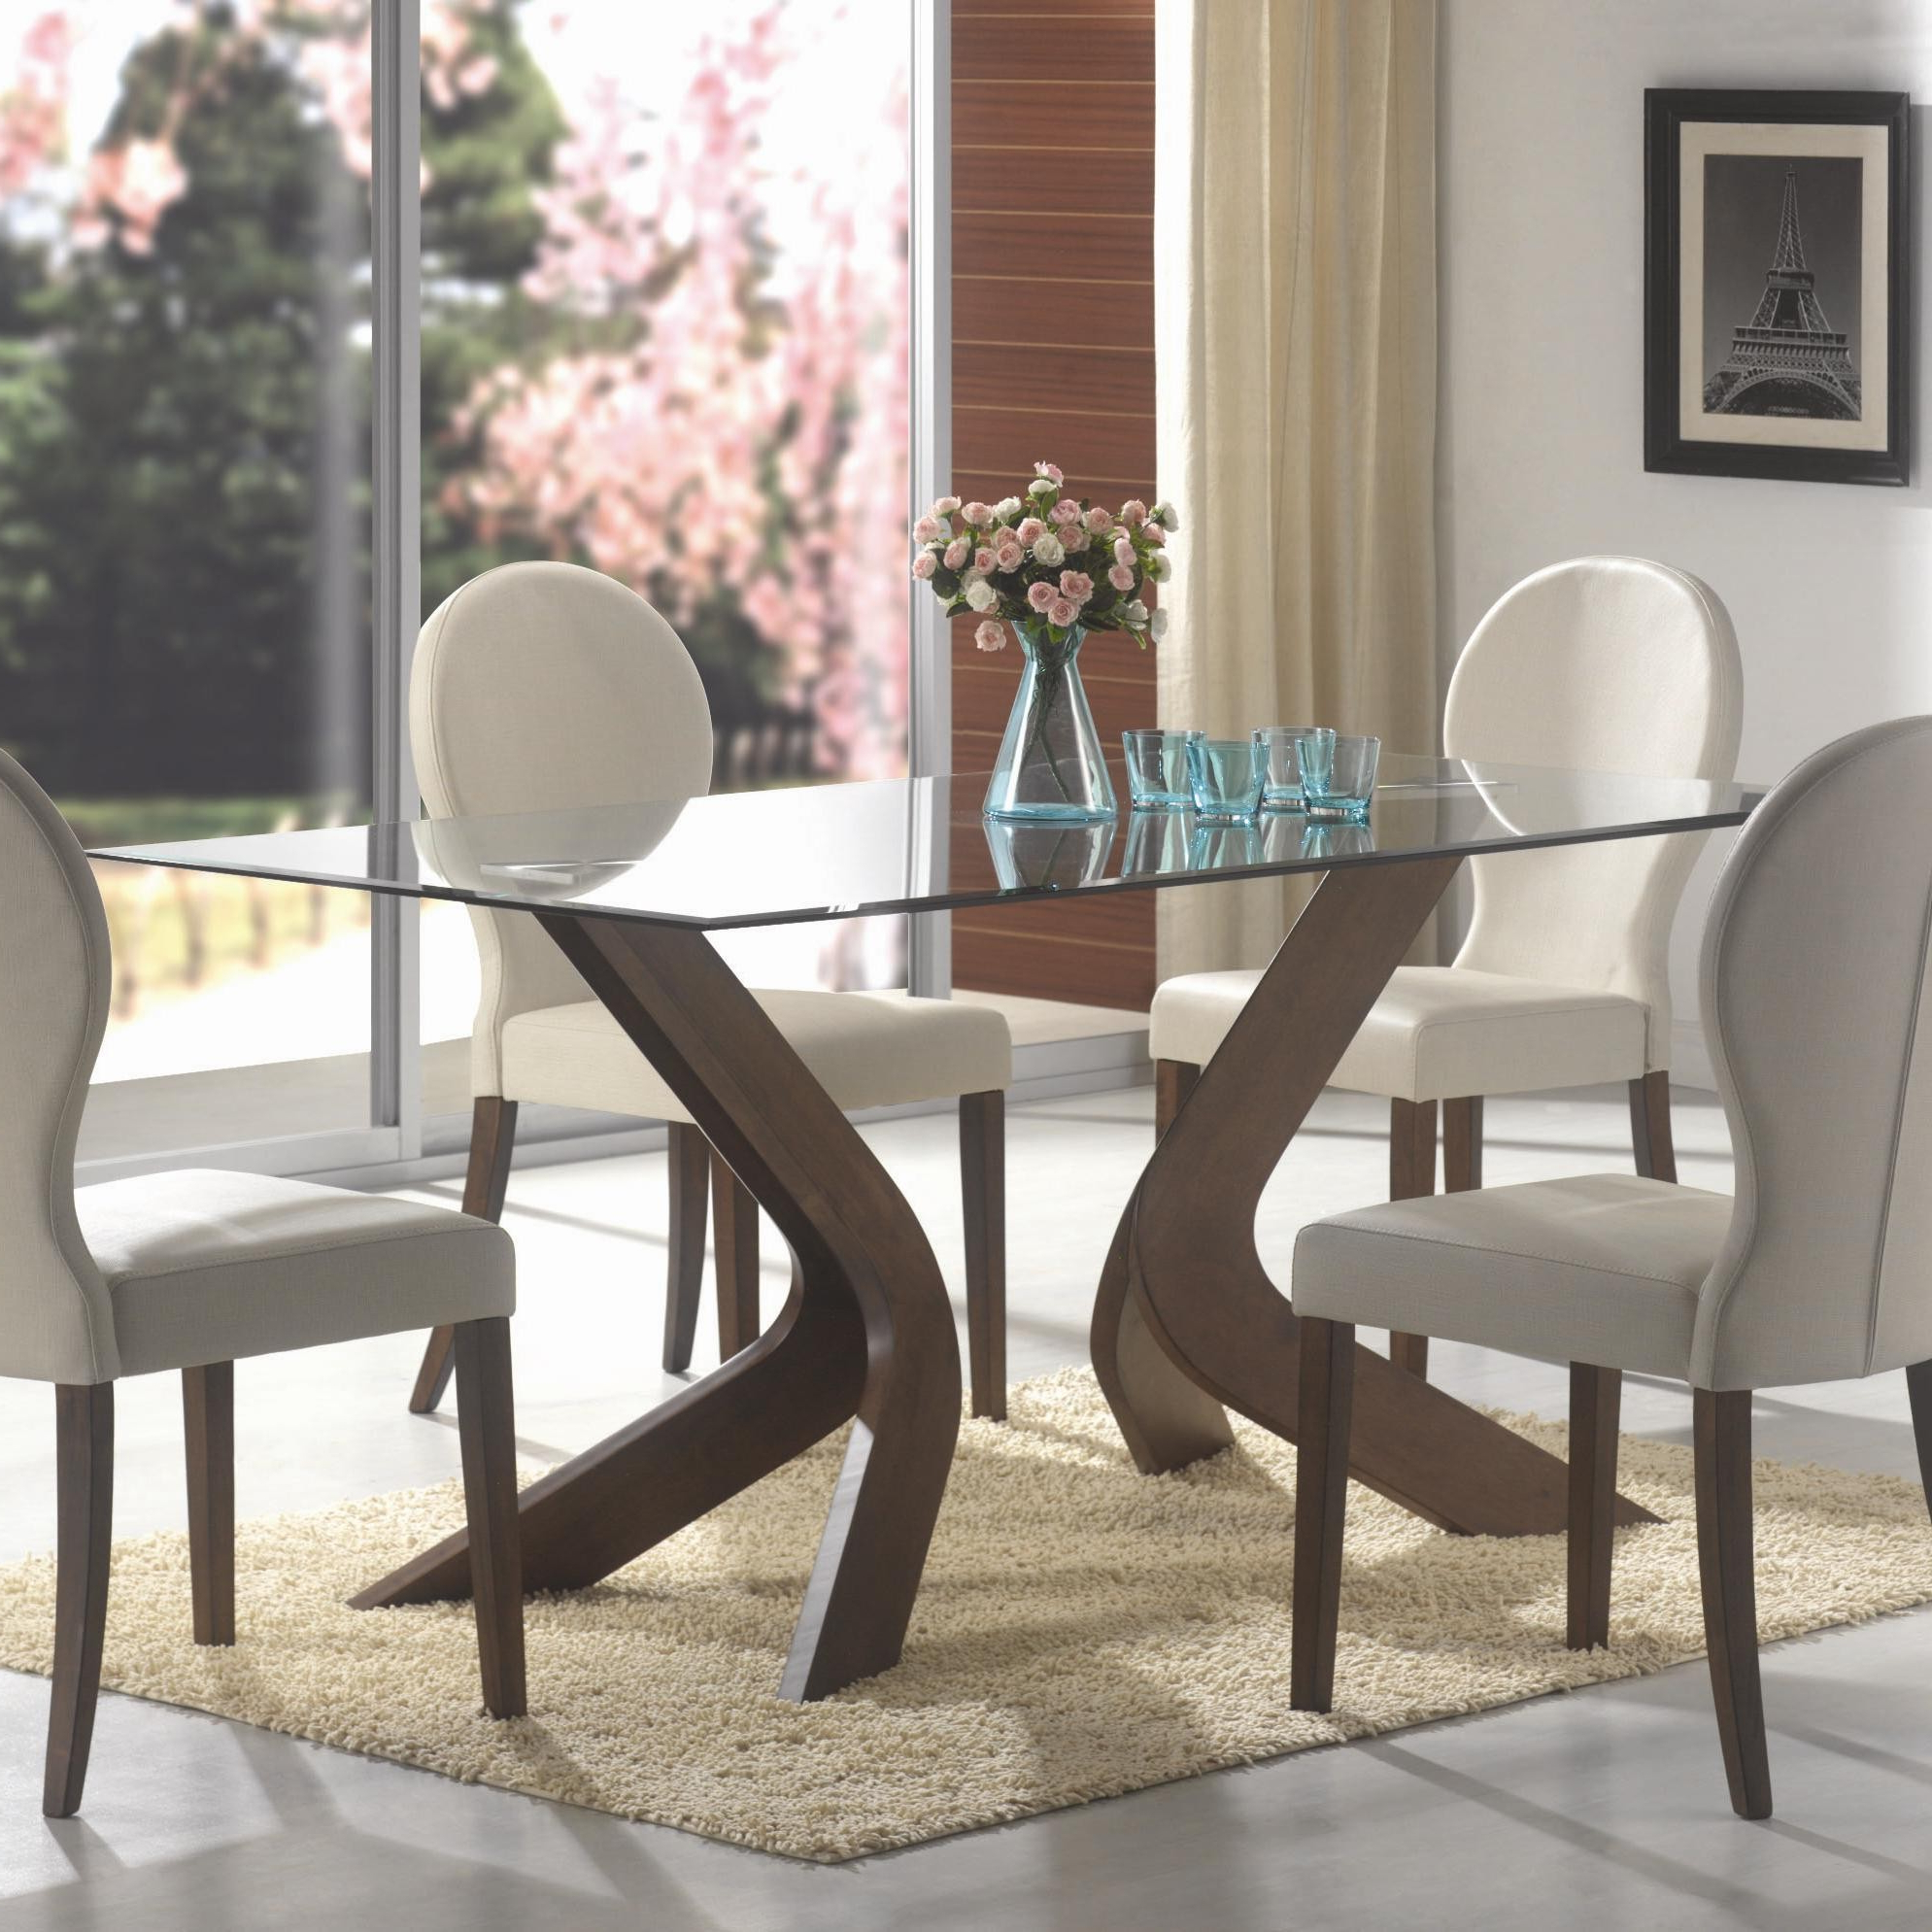 Rectangular Glasstop Dining Tables intended for Latest Glass Top Dining Tables With Wood Base Interior Ideas